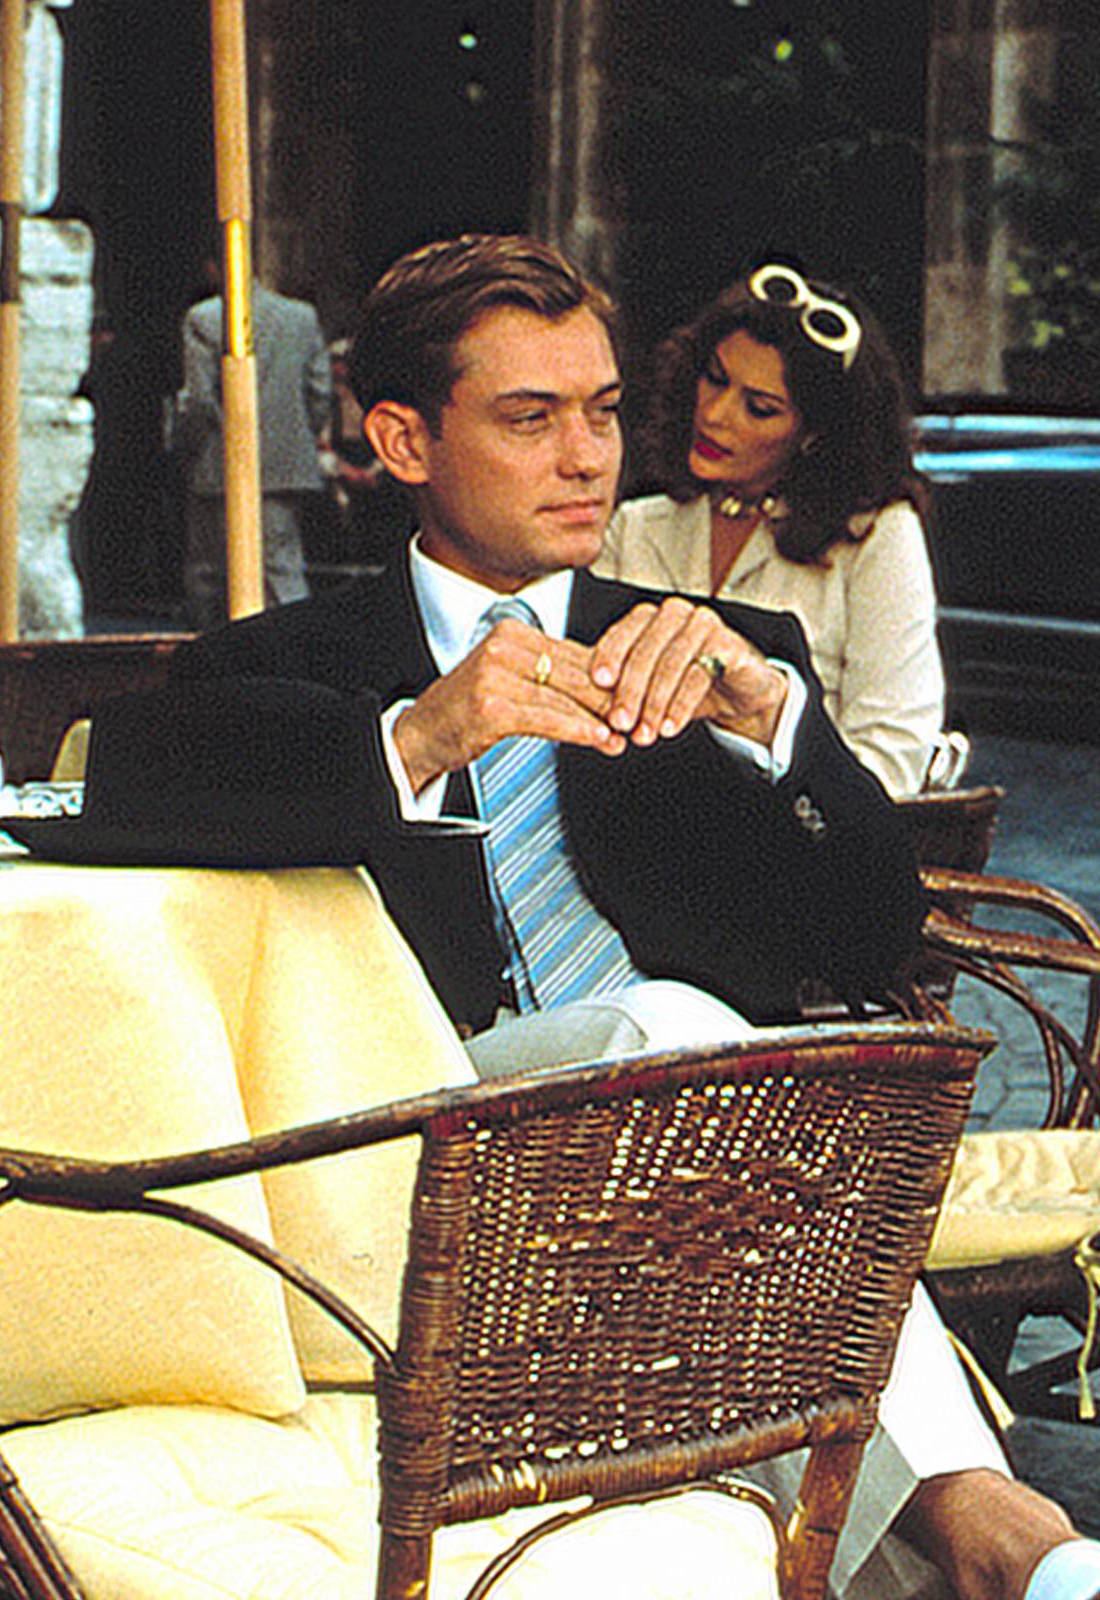 Jude Law The Talented Mr Ripley